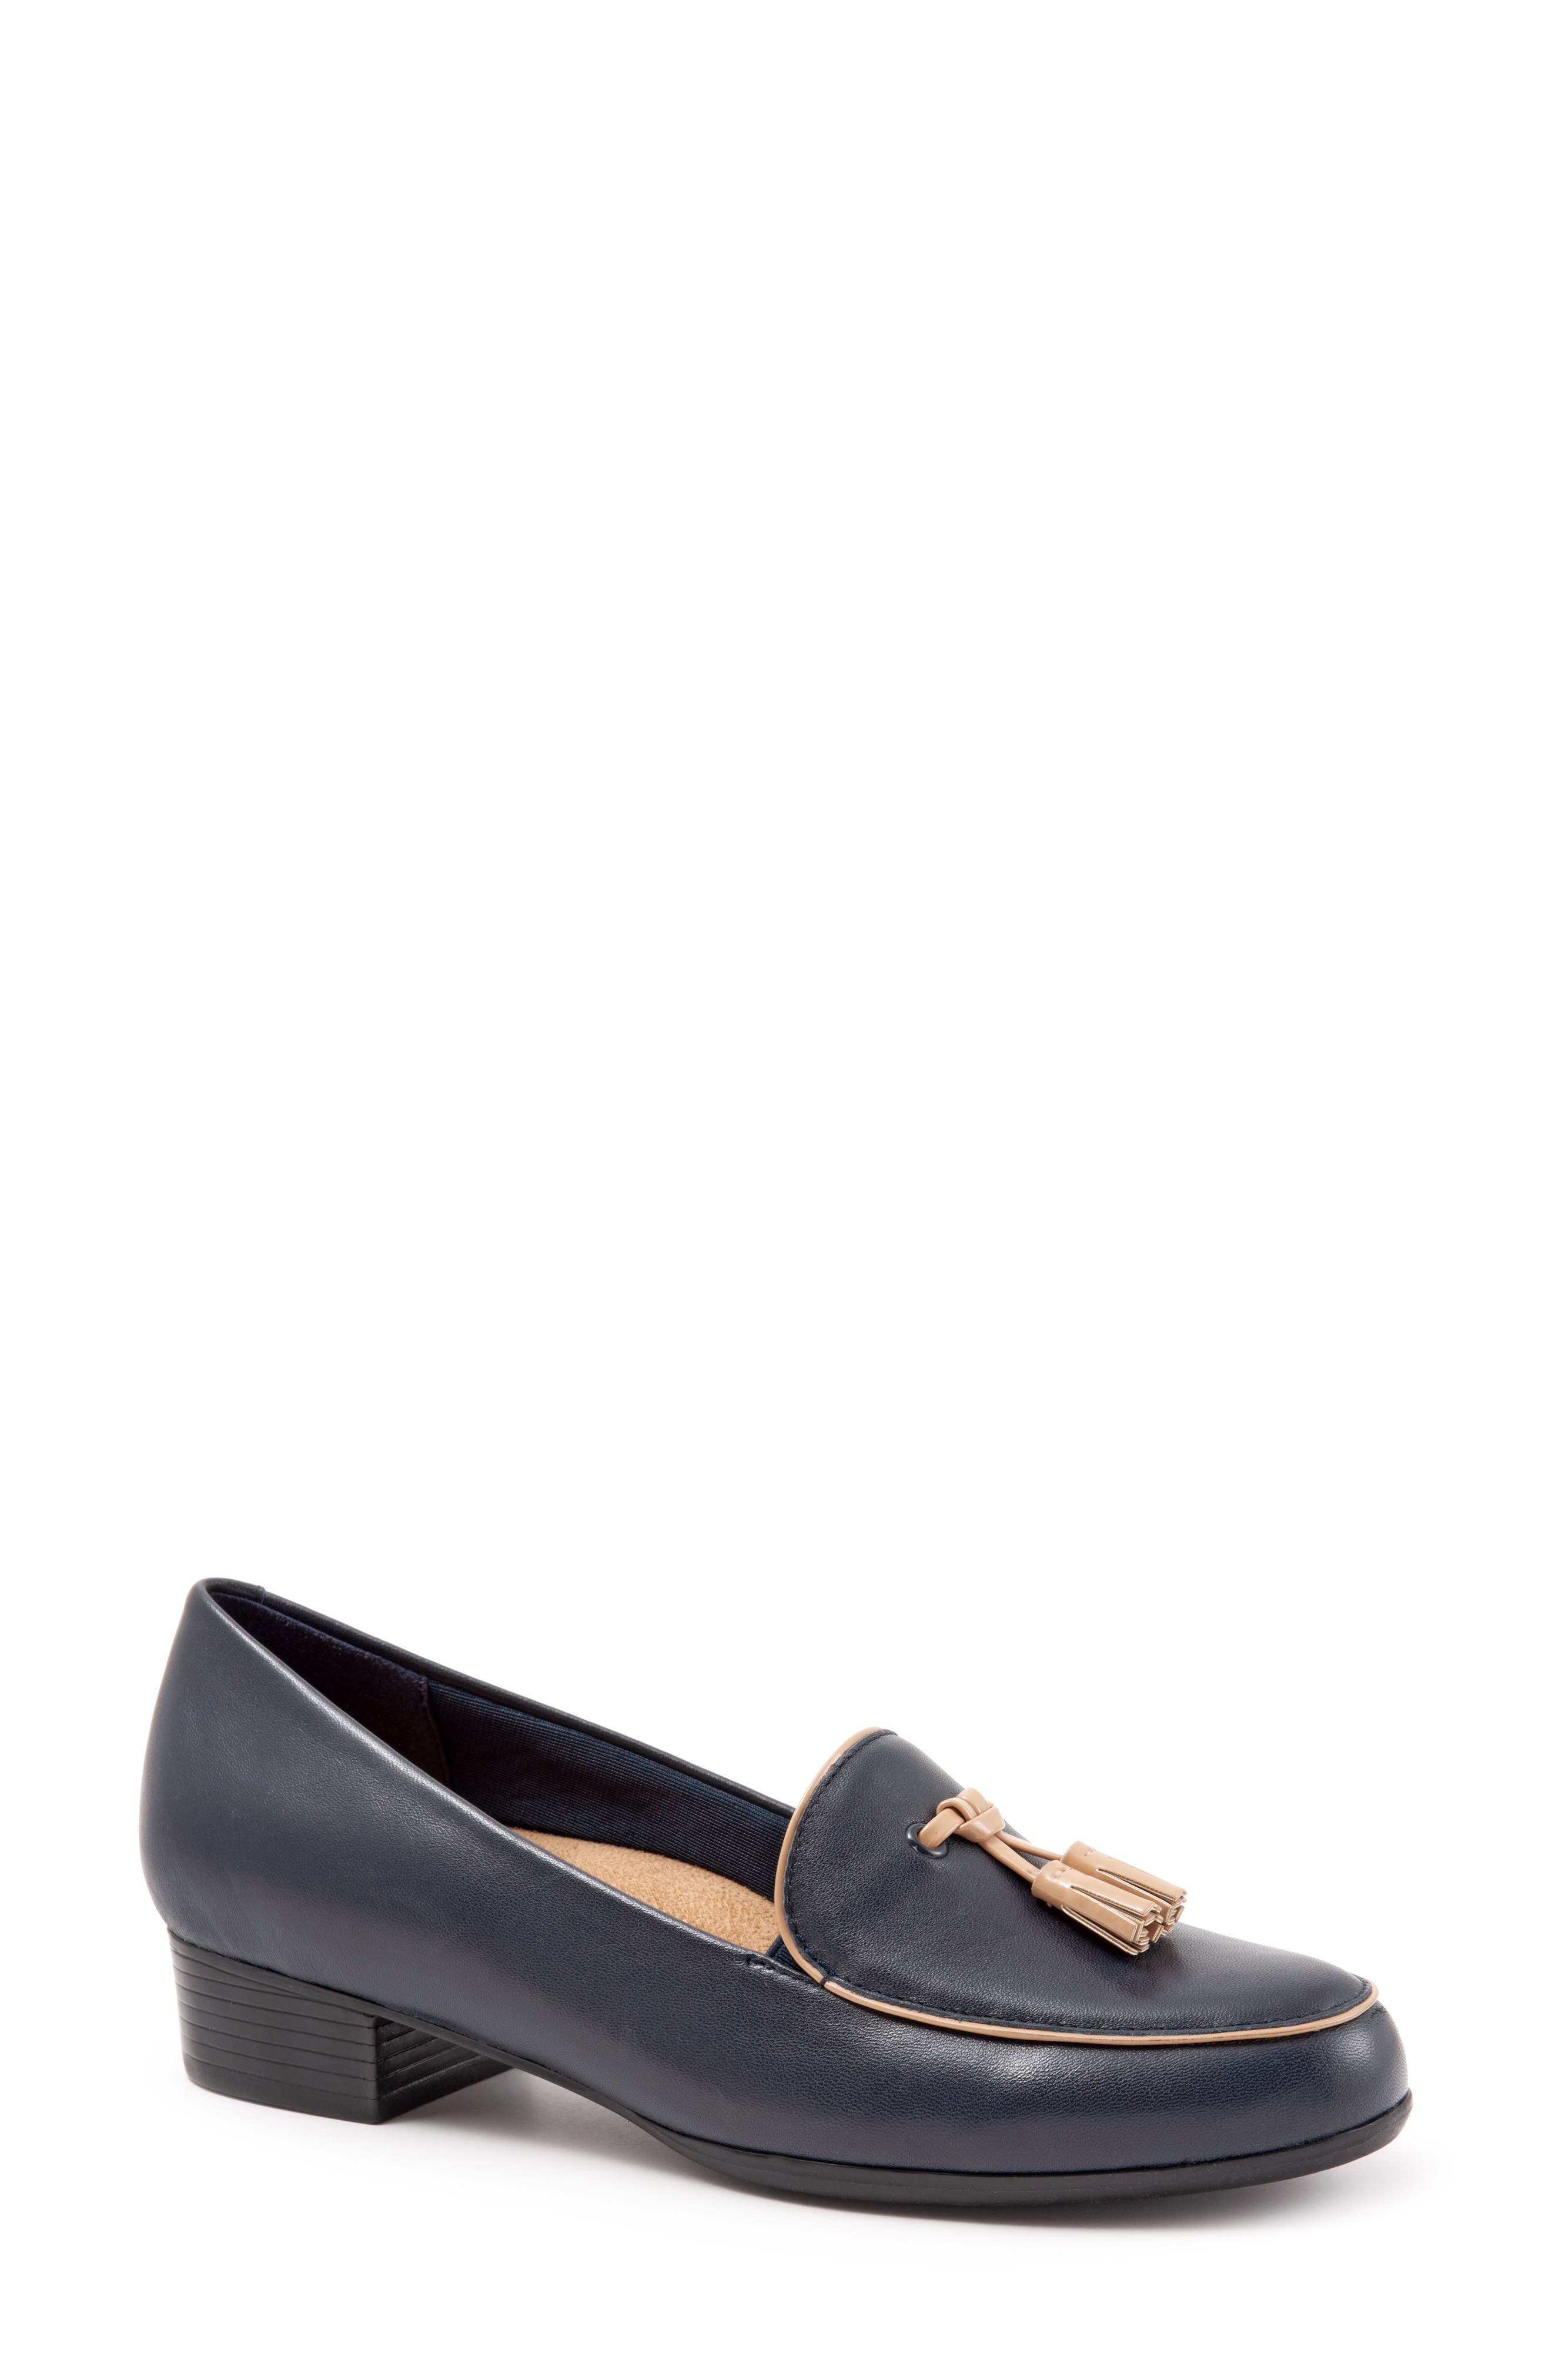 TROTTERS Mary Tassel Loafer, Main, color, NAVY LEATHER